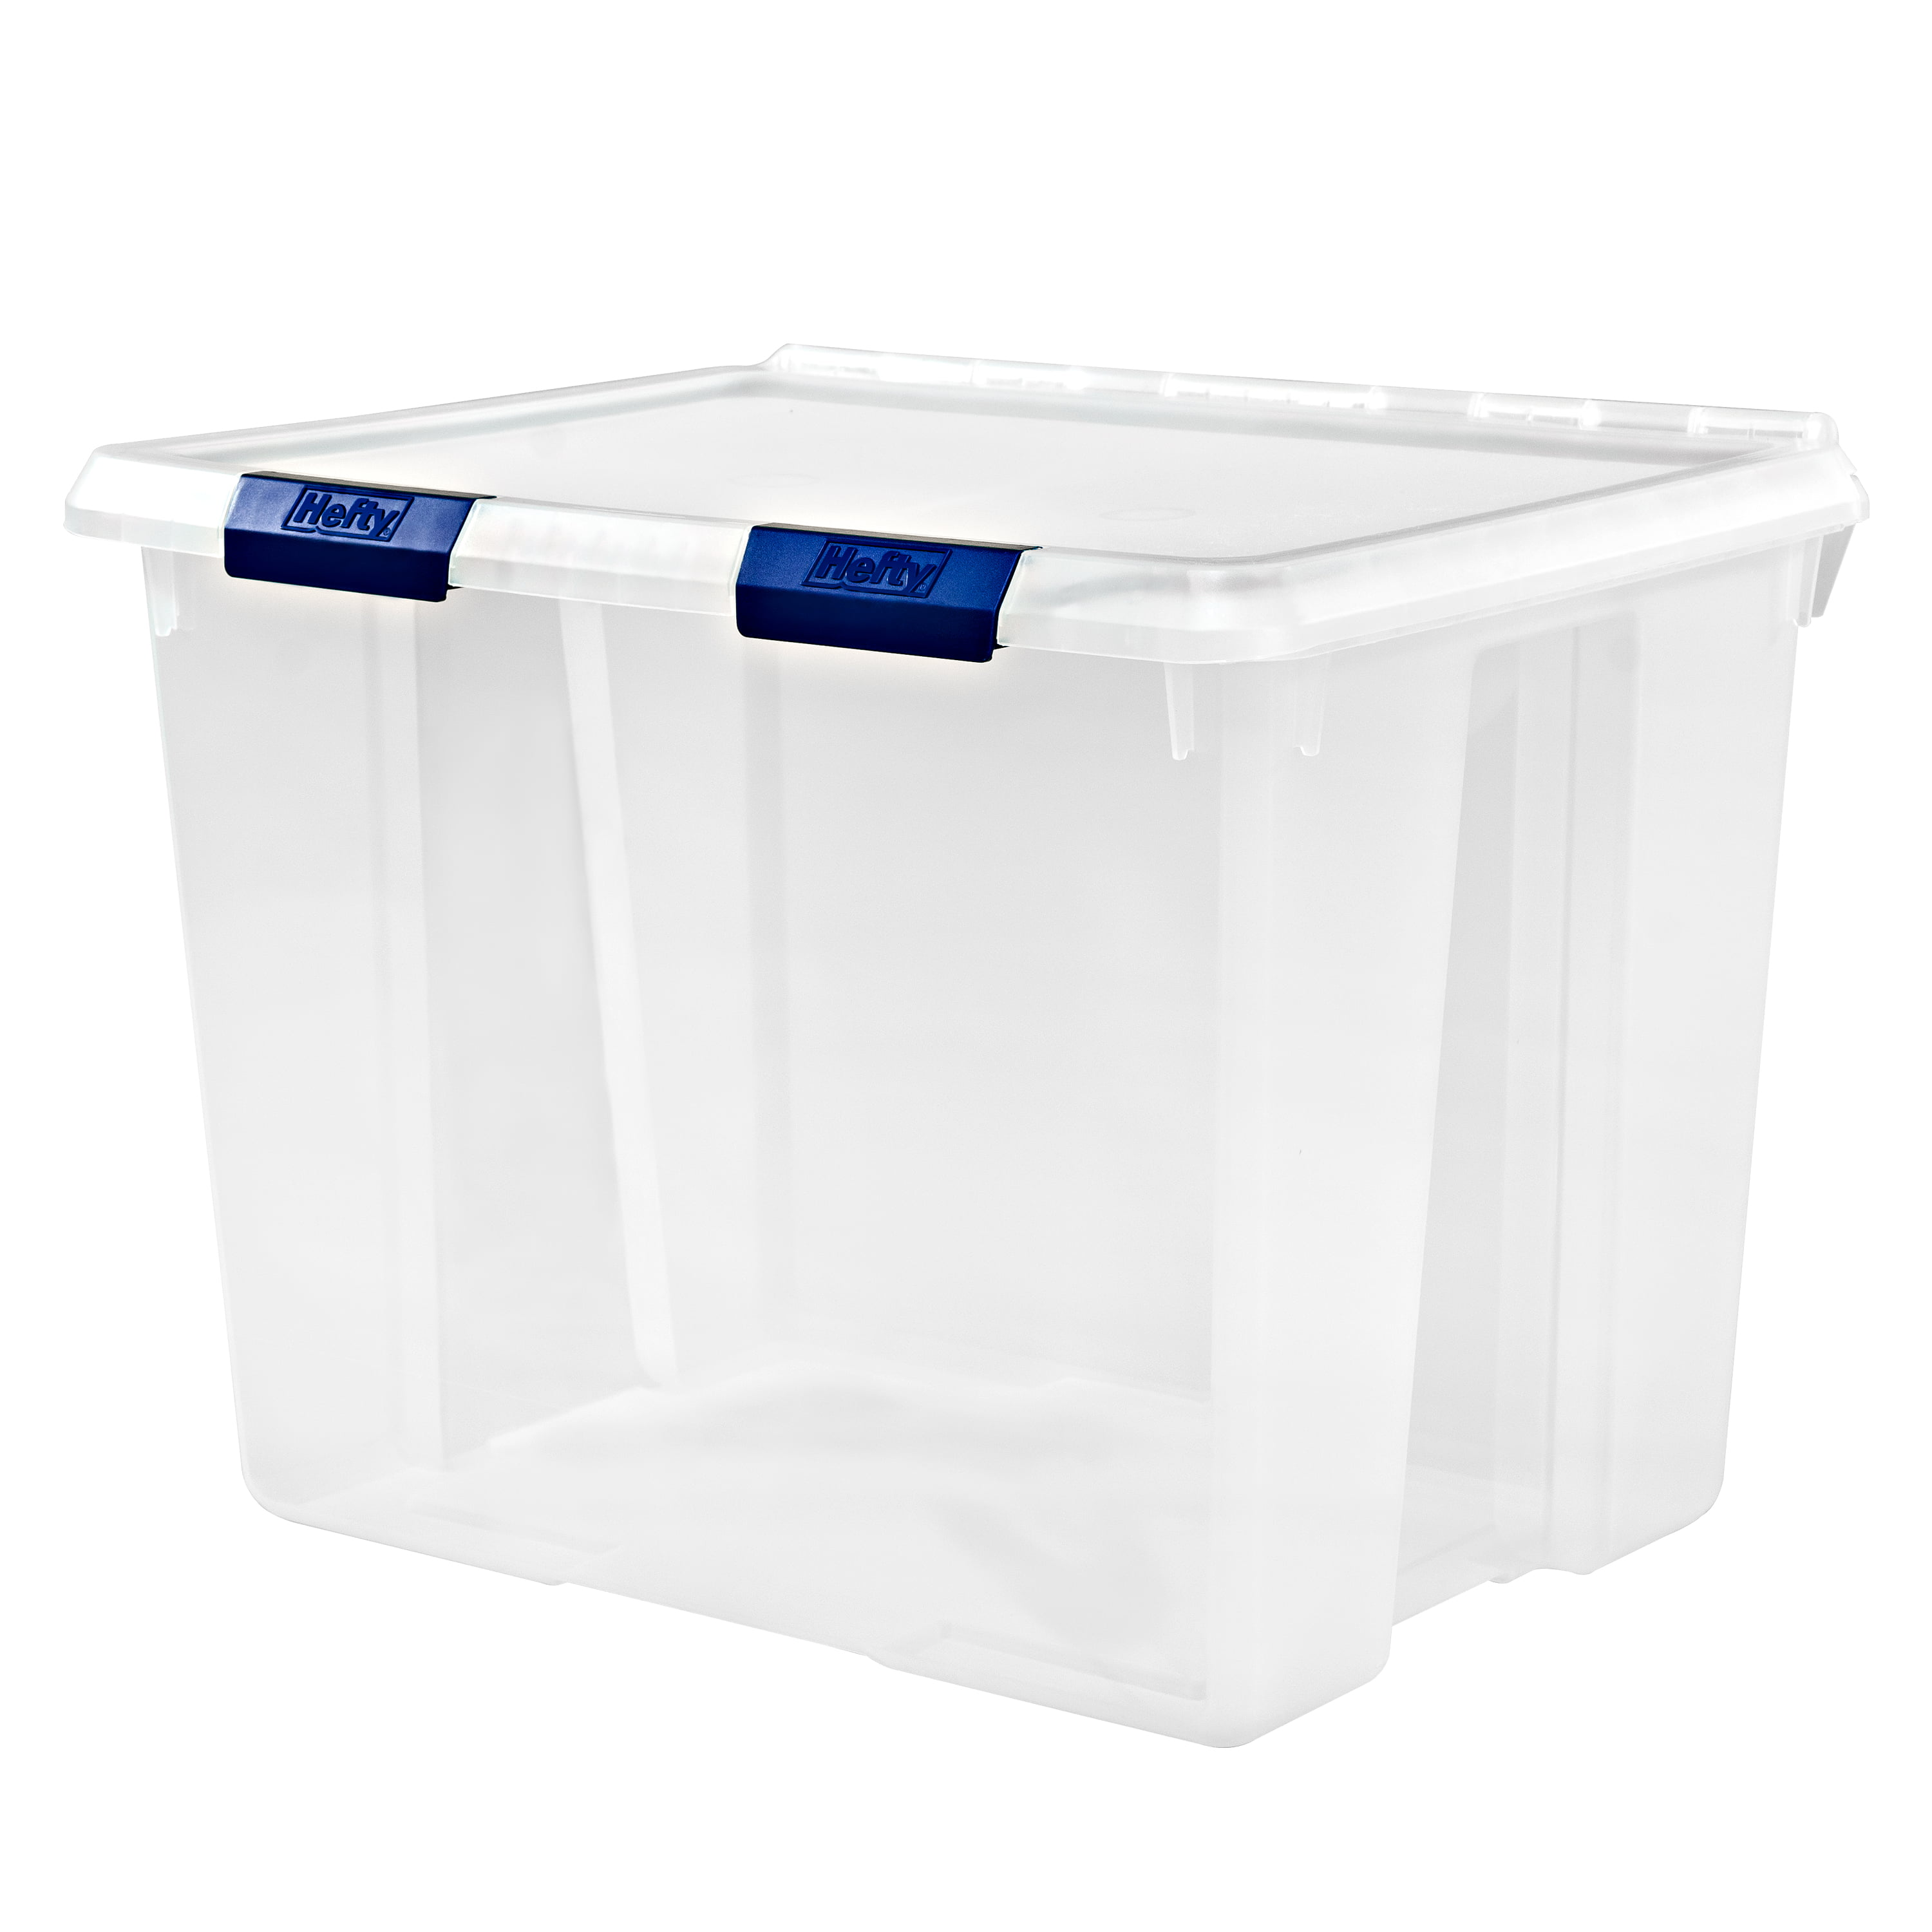 Hefty PROTECT Heavy Duty Storage, 70 Qt. Lid with Protective Seal / Clear